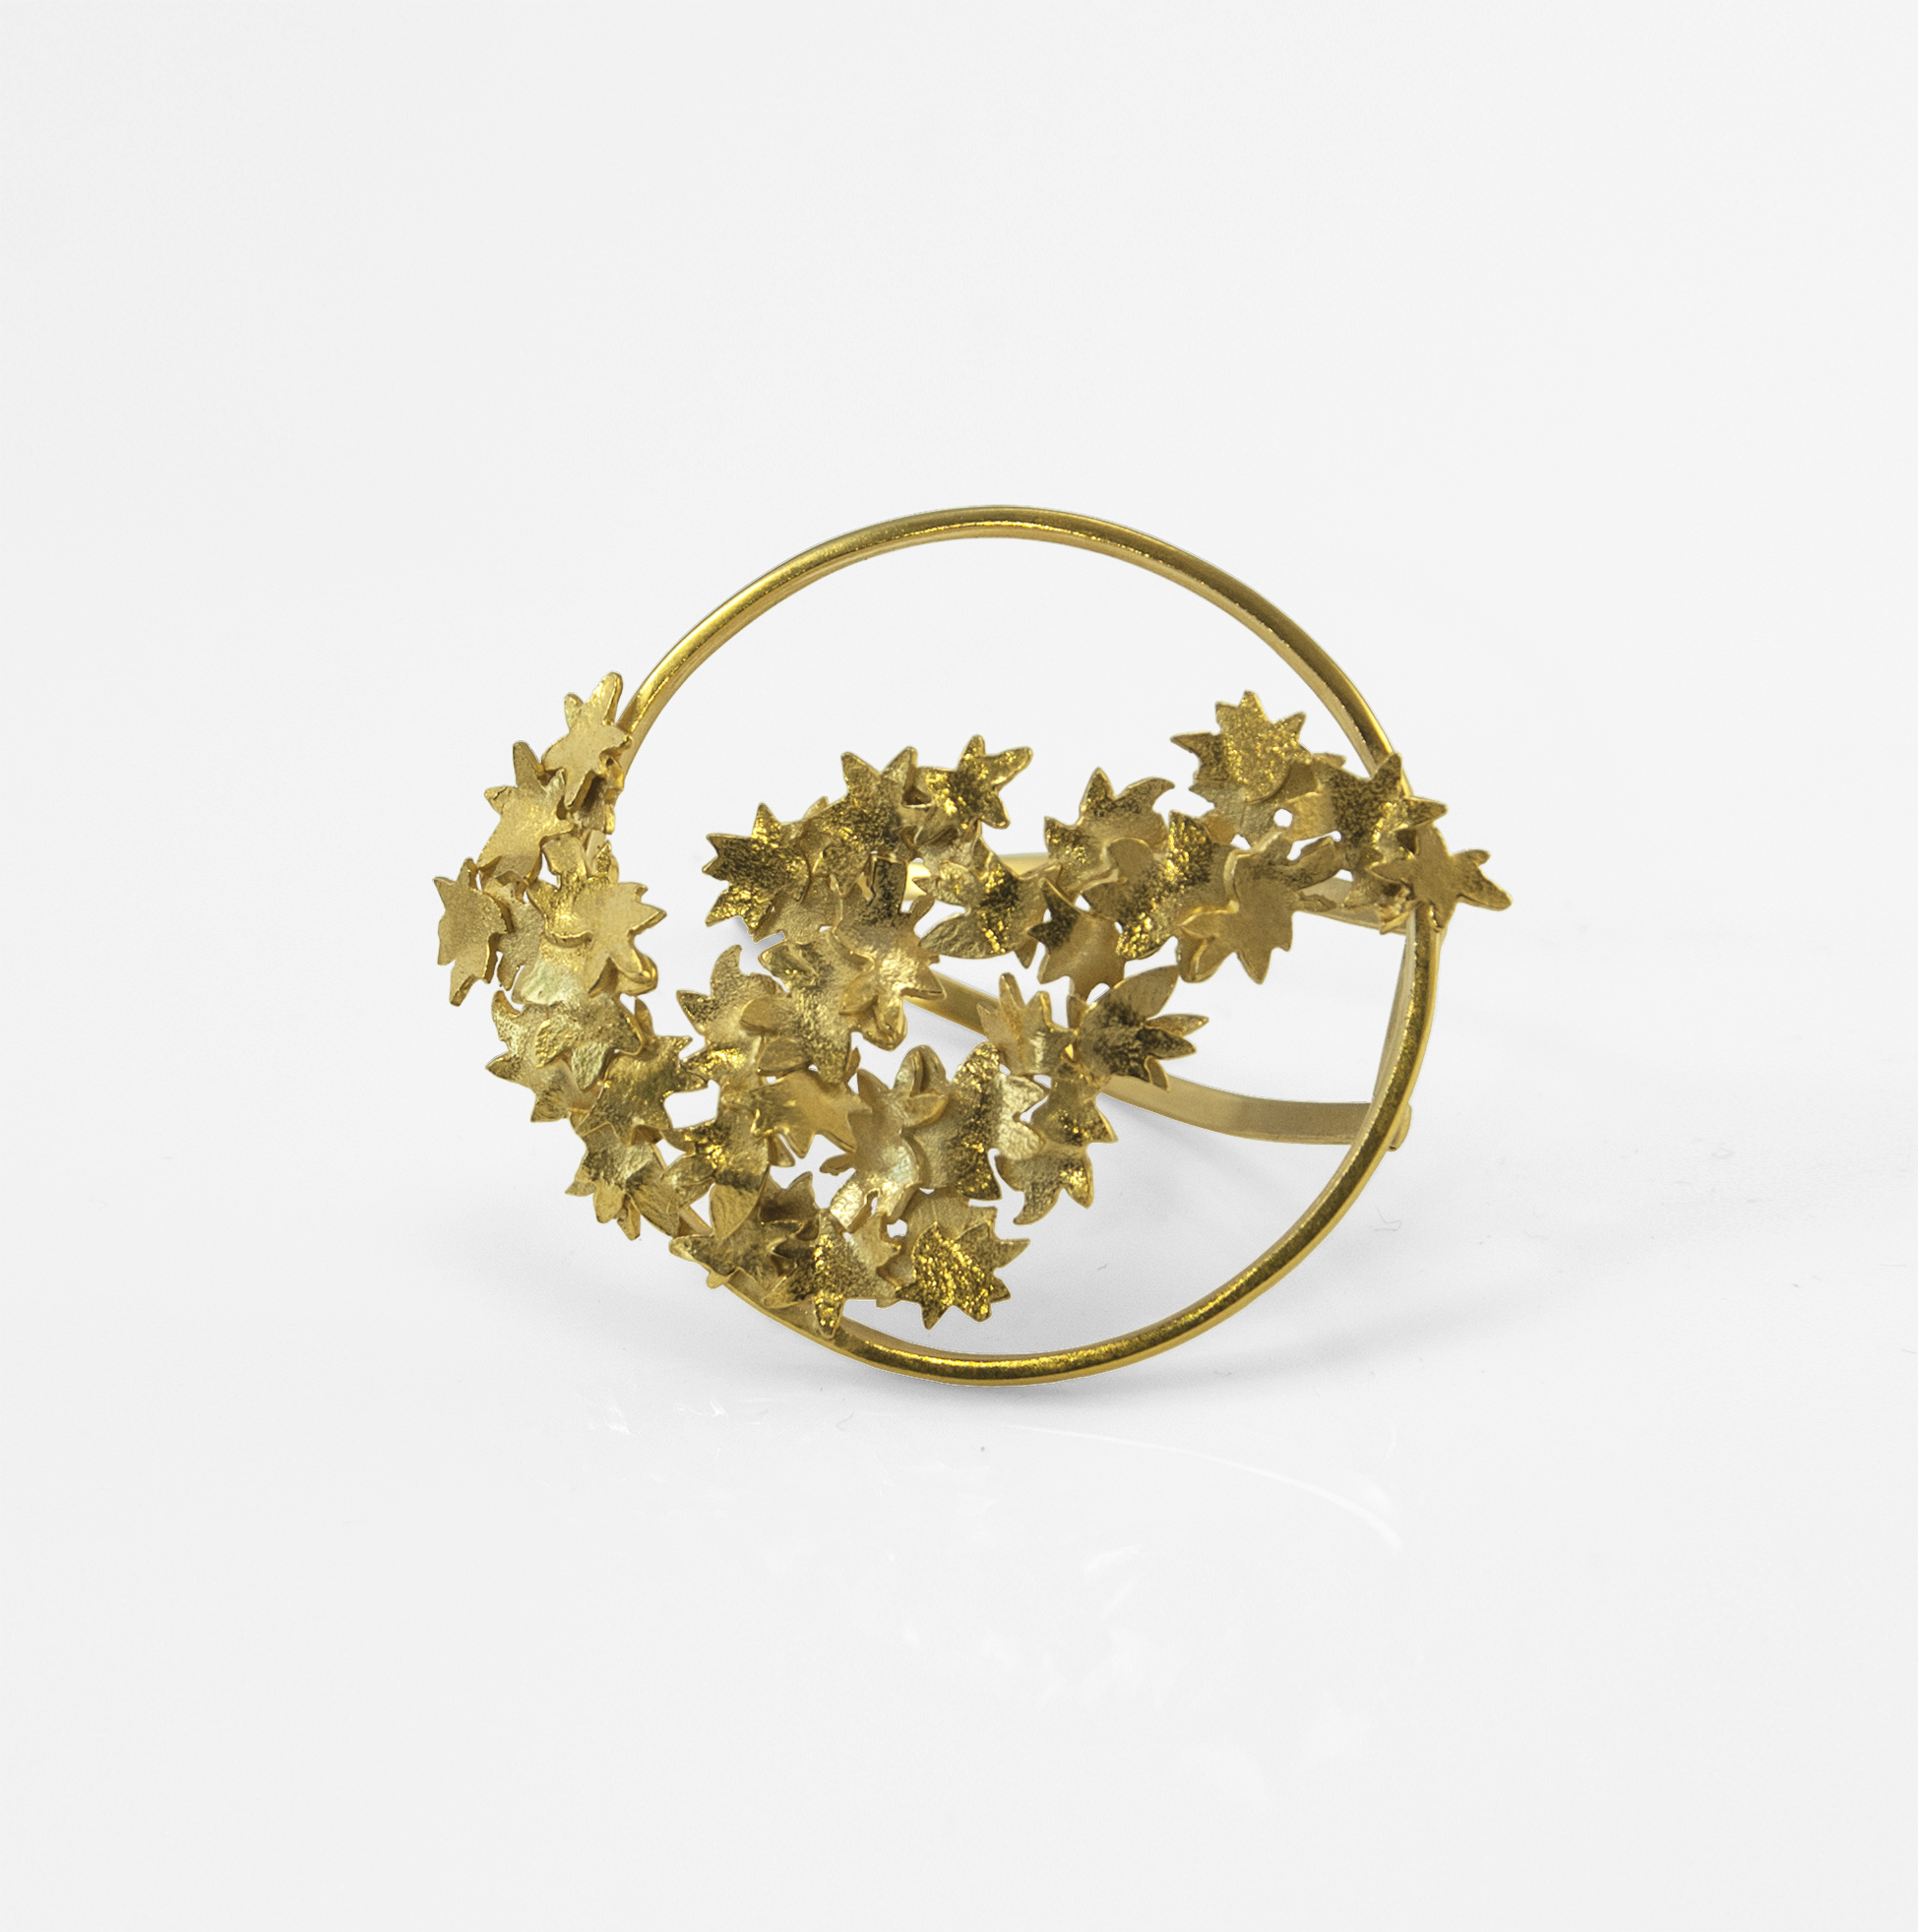 Fiona McAlear - Garland hair slide and brooch $485. 18ct Gold plated Silver.jpg